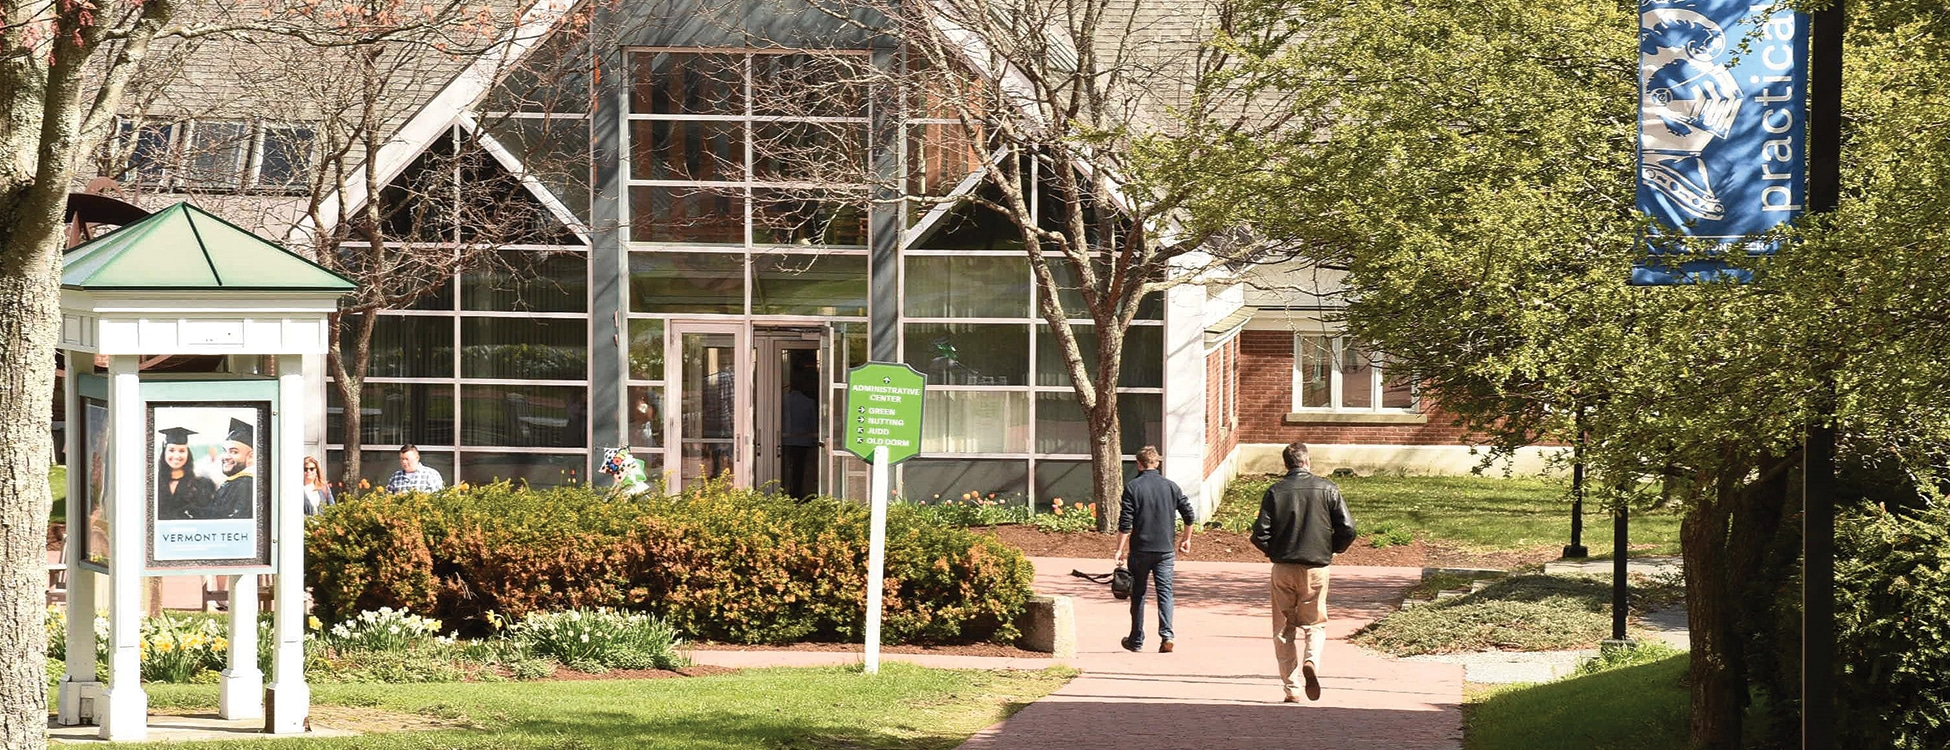 Randolph center campus, spring, students walking, administration building